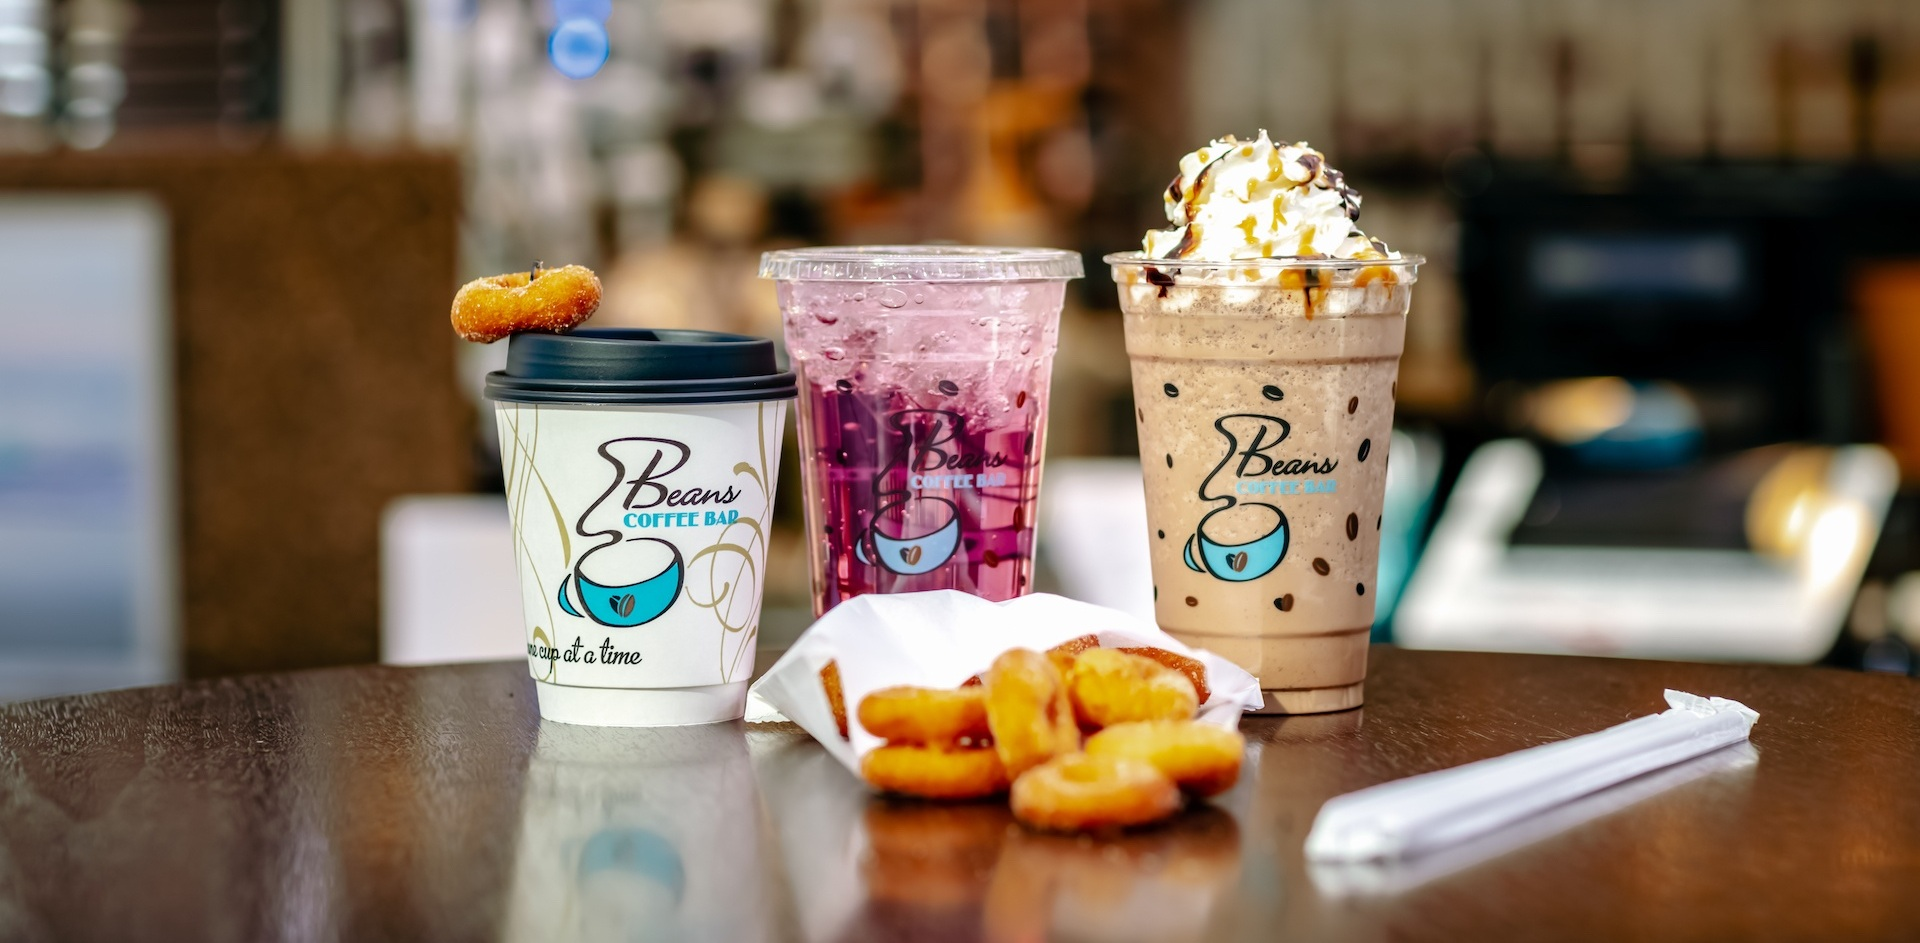 Signature drinks by Beans Coffee Bar downtown fargo.jpg